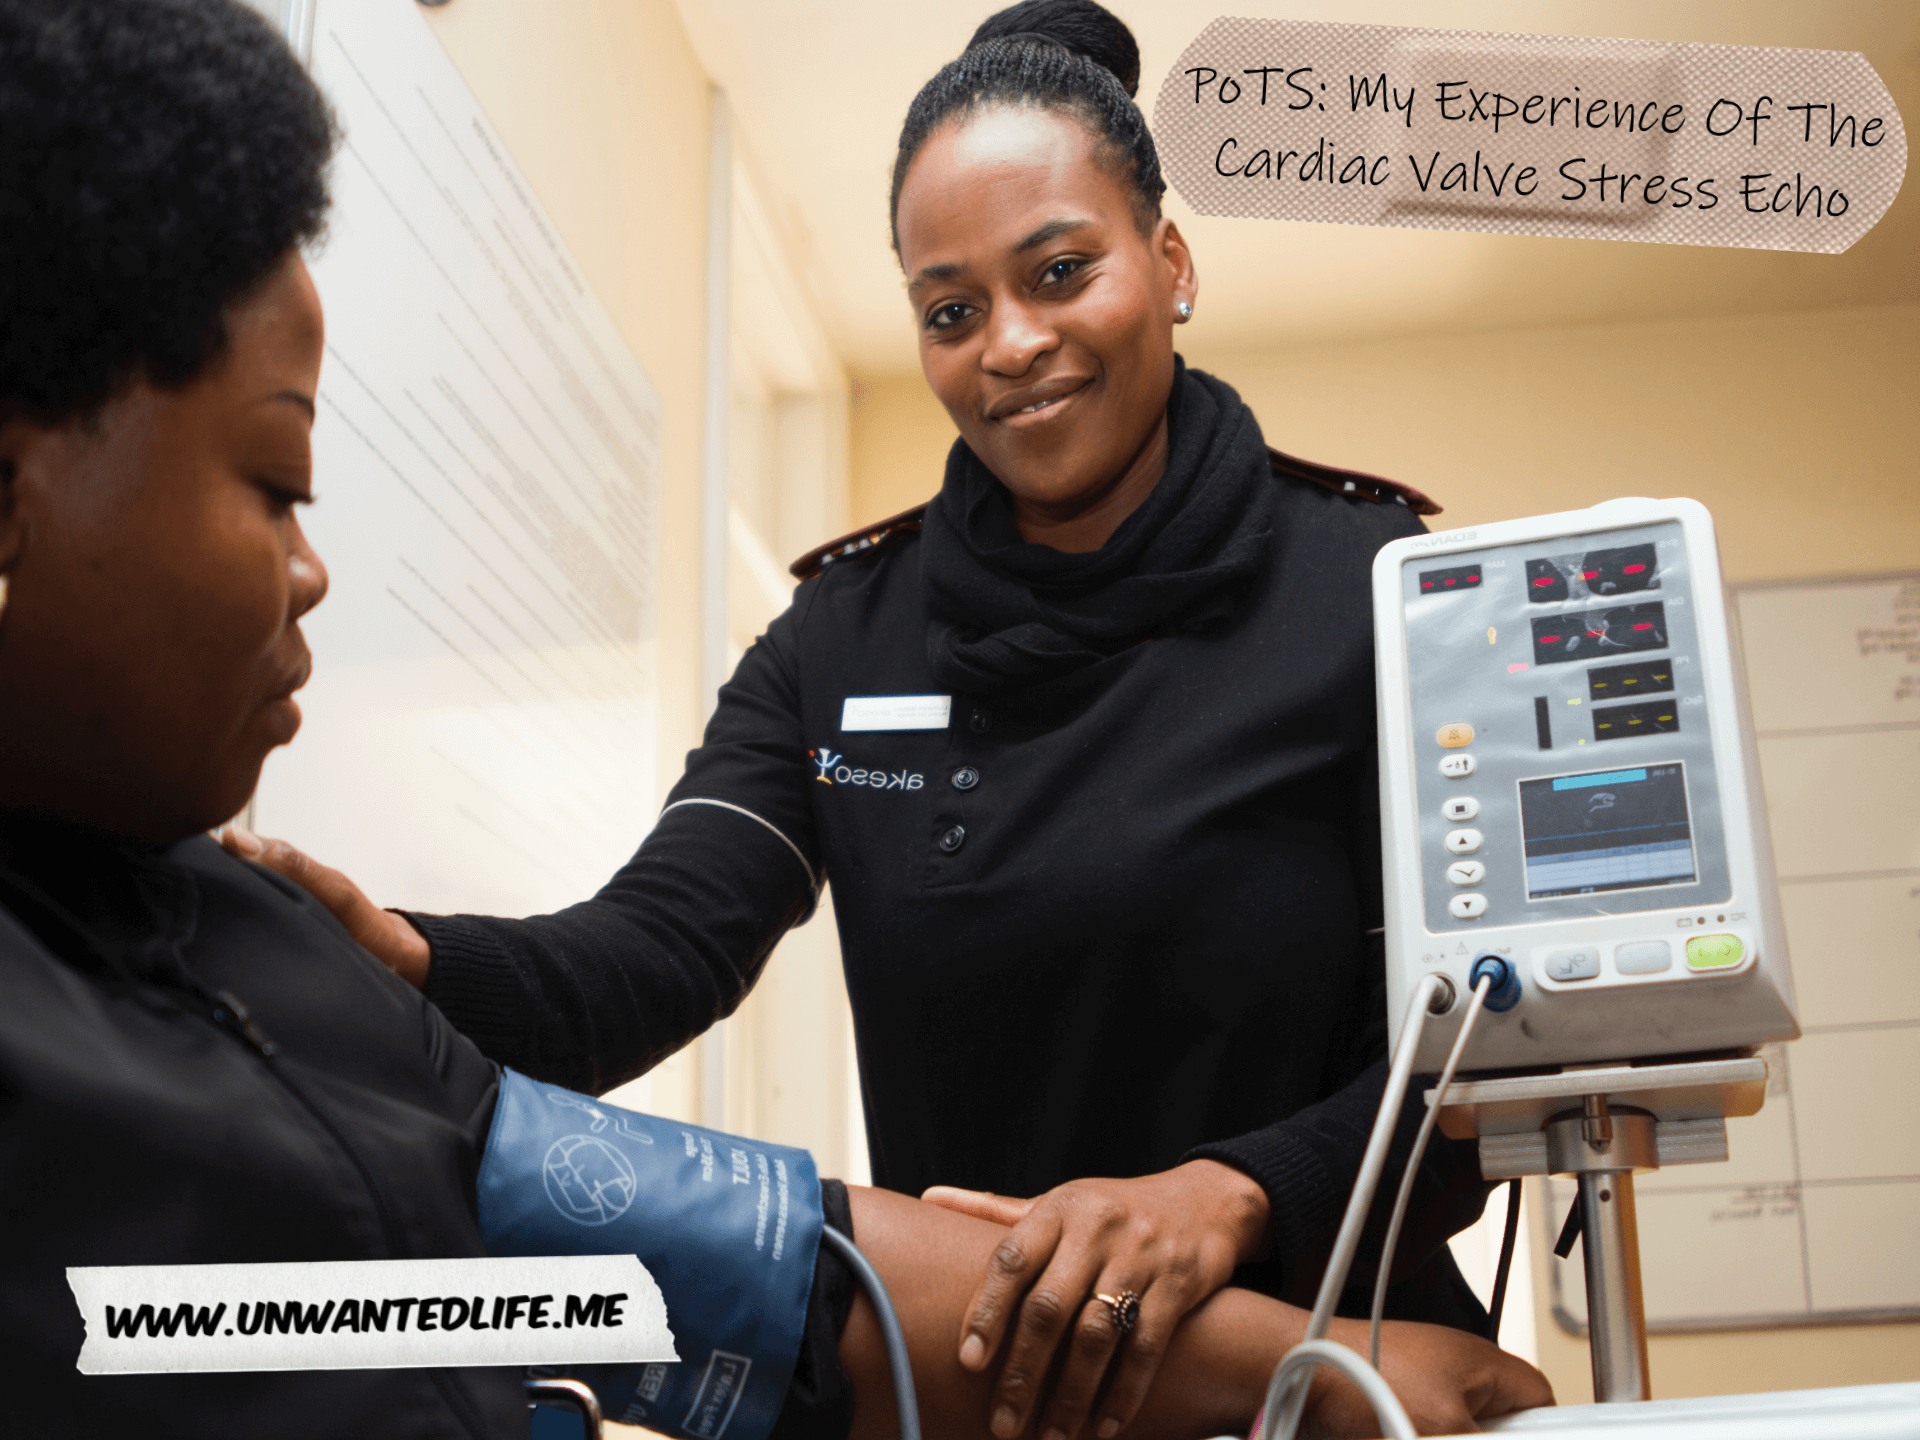 A black female medical professional talking a blood pressure test of a black female patient in a hospital room with the article title - PoTS: My Experience Of The Cardiac Valve Stress Echo - in the top right corner of the image